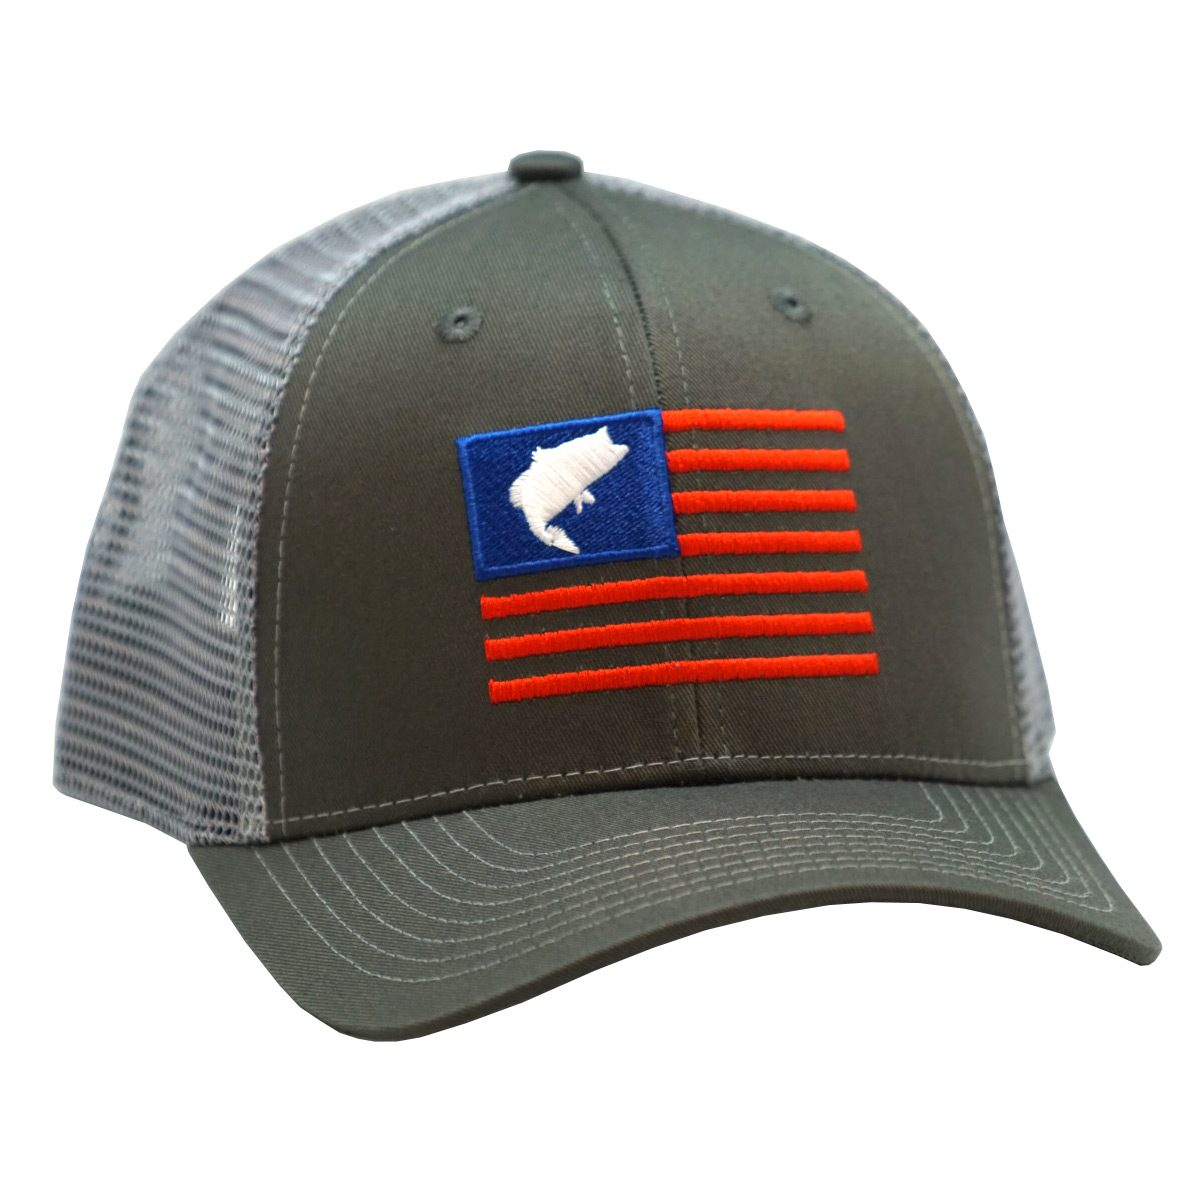 Bass Flag Embroidery Charcoal Grey 3